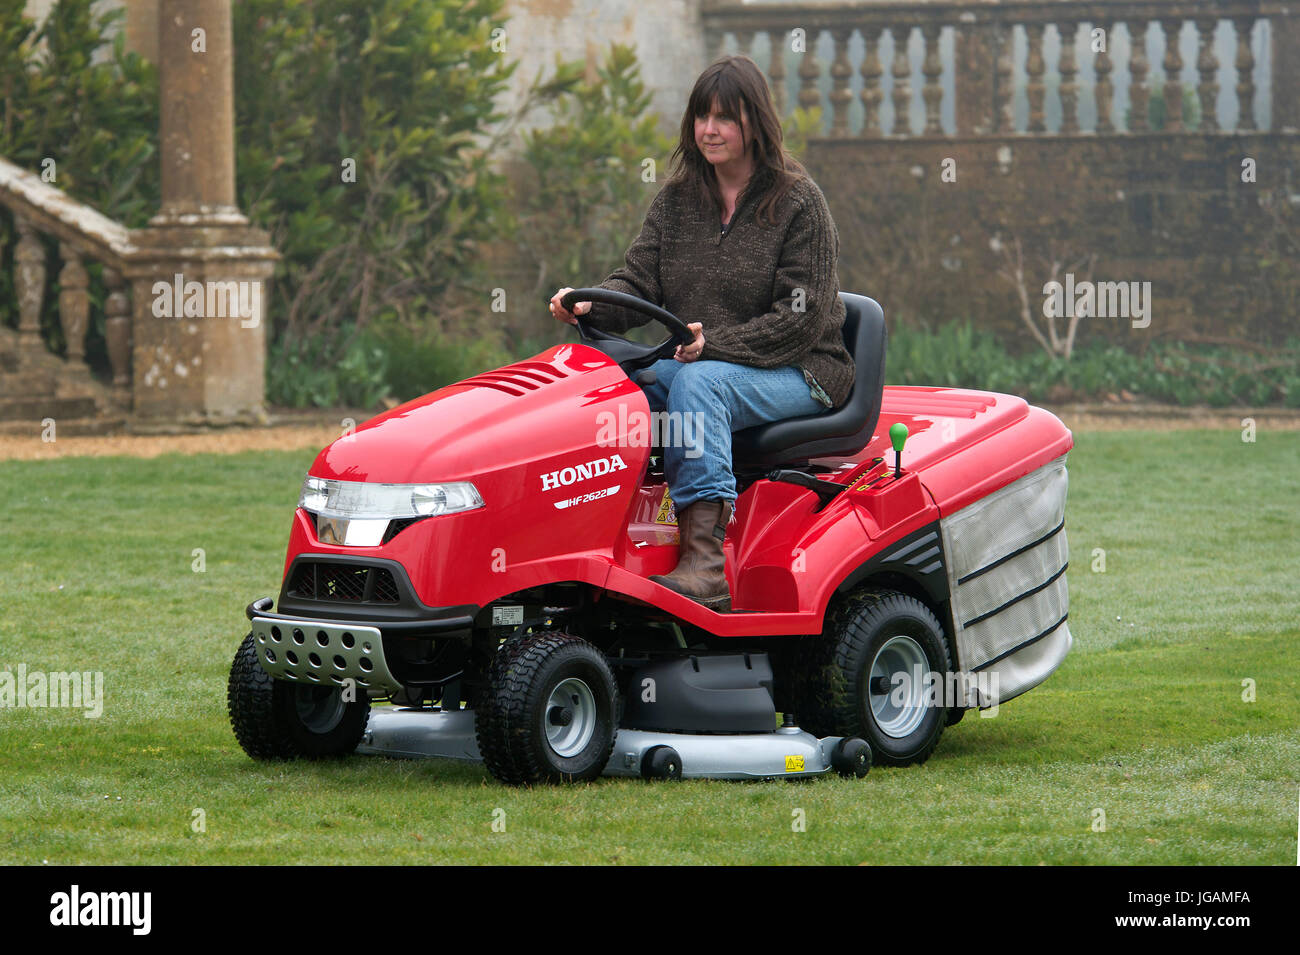 Sit-on mowers being used to cut grass - Stock Image